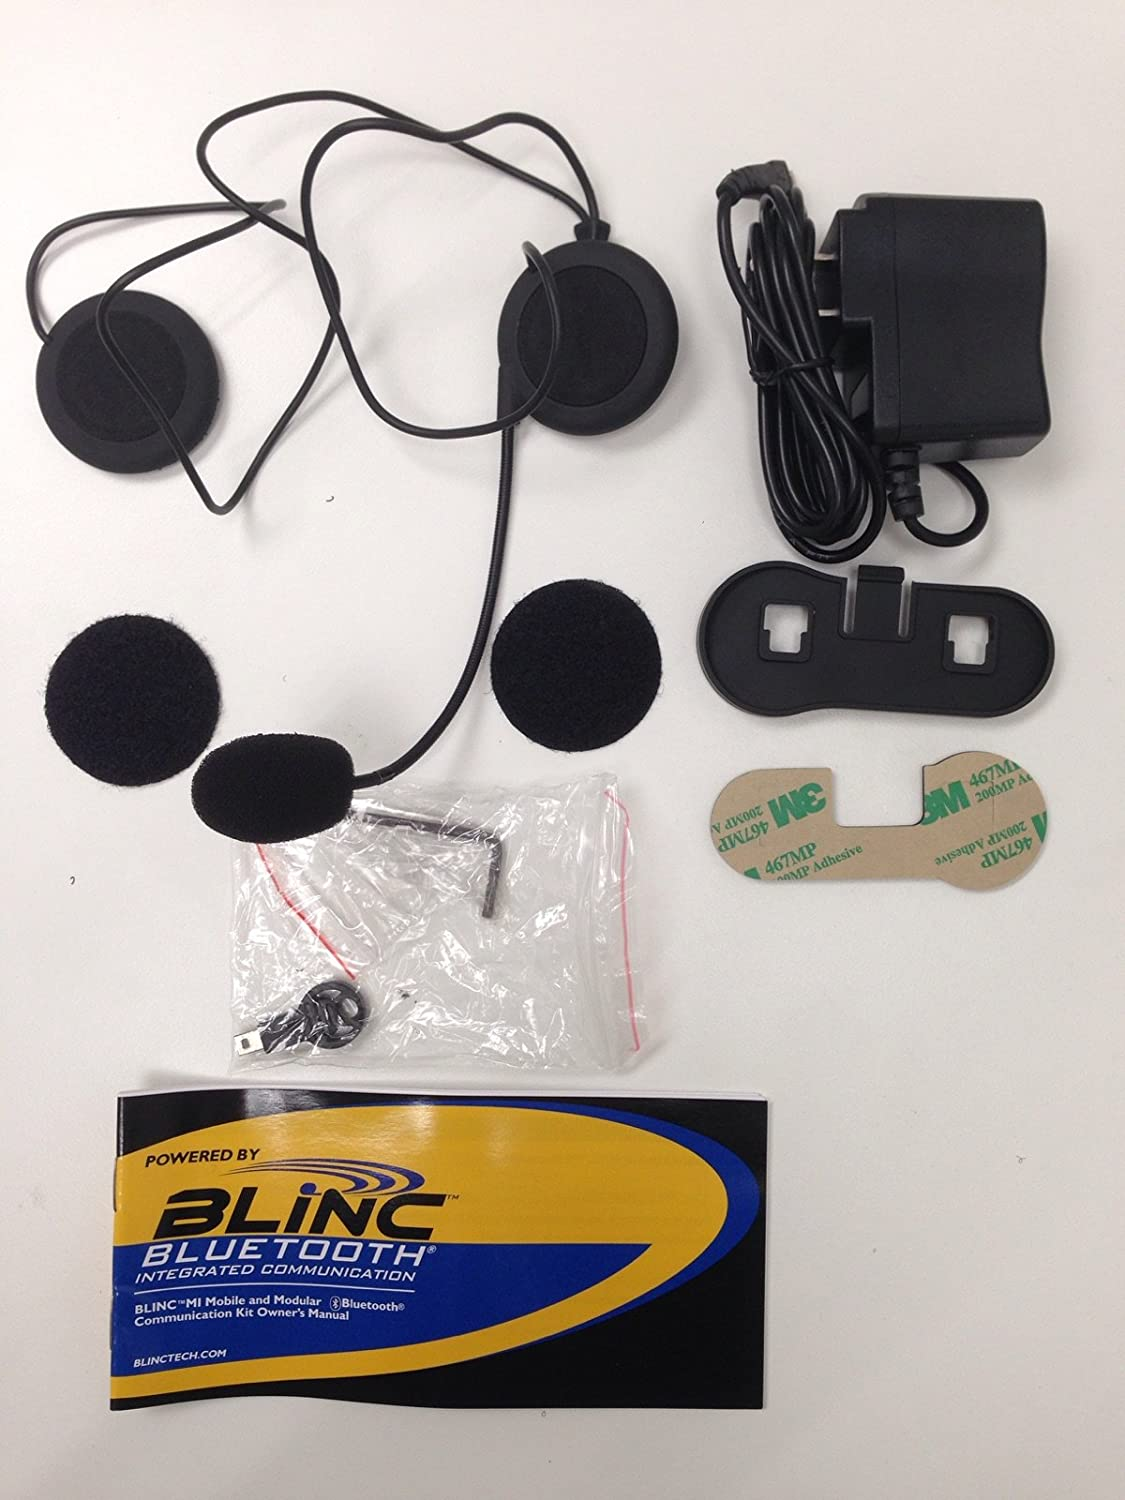 Blinc M1 Bluetooth 2.0 Integrated Communication Module Add On for All Helmets